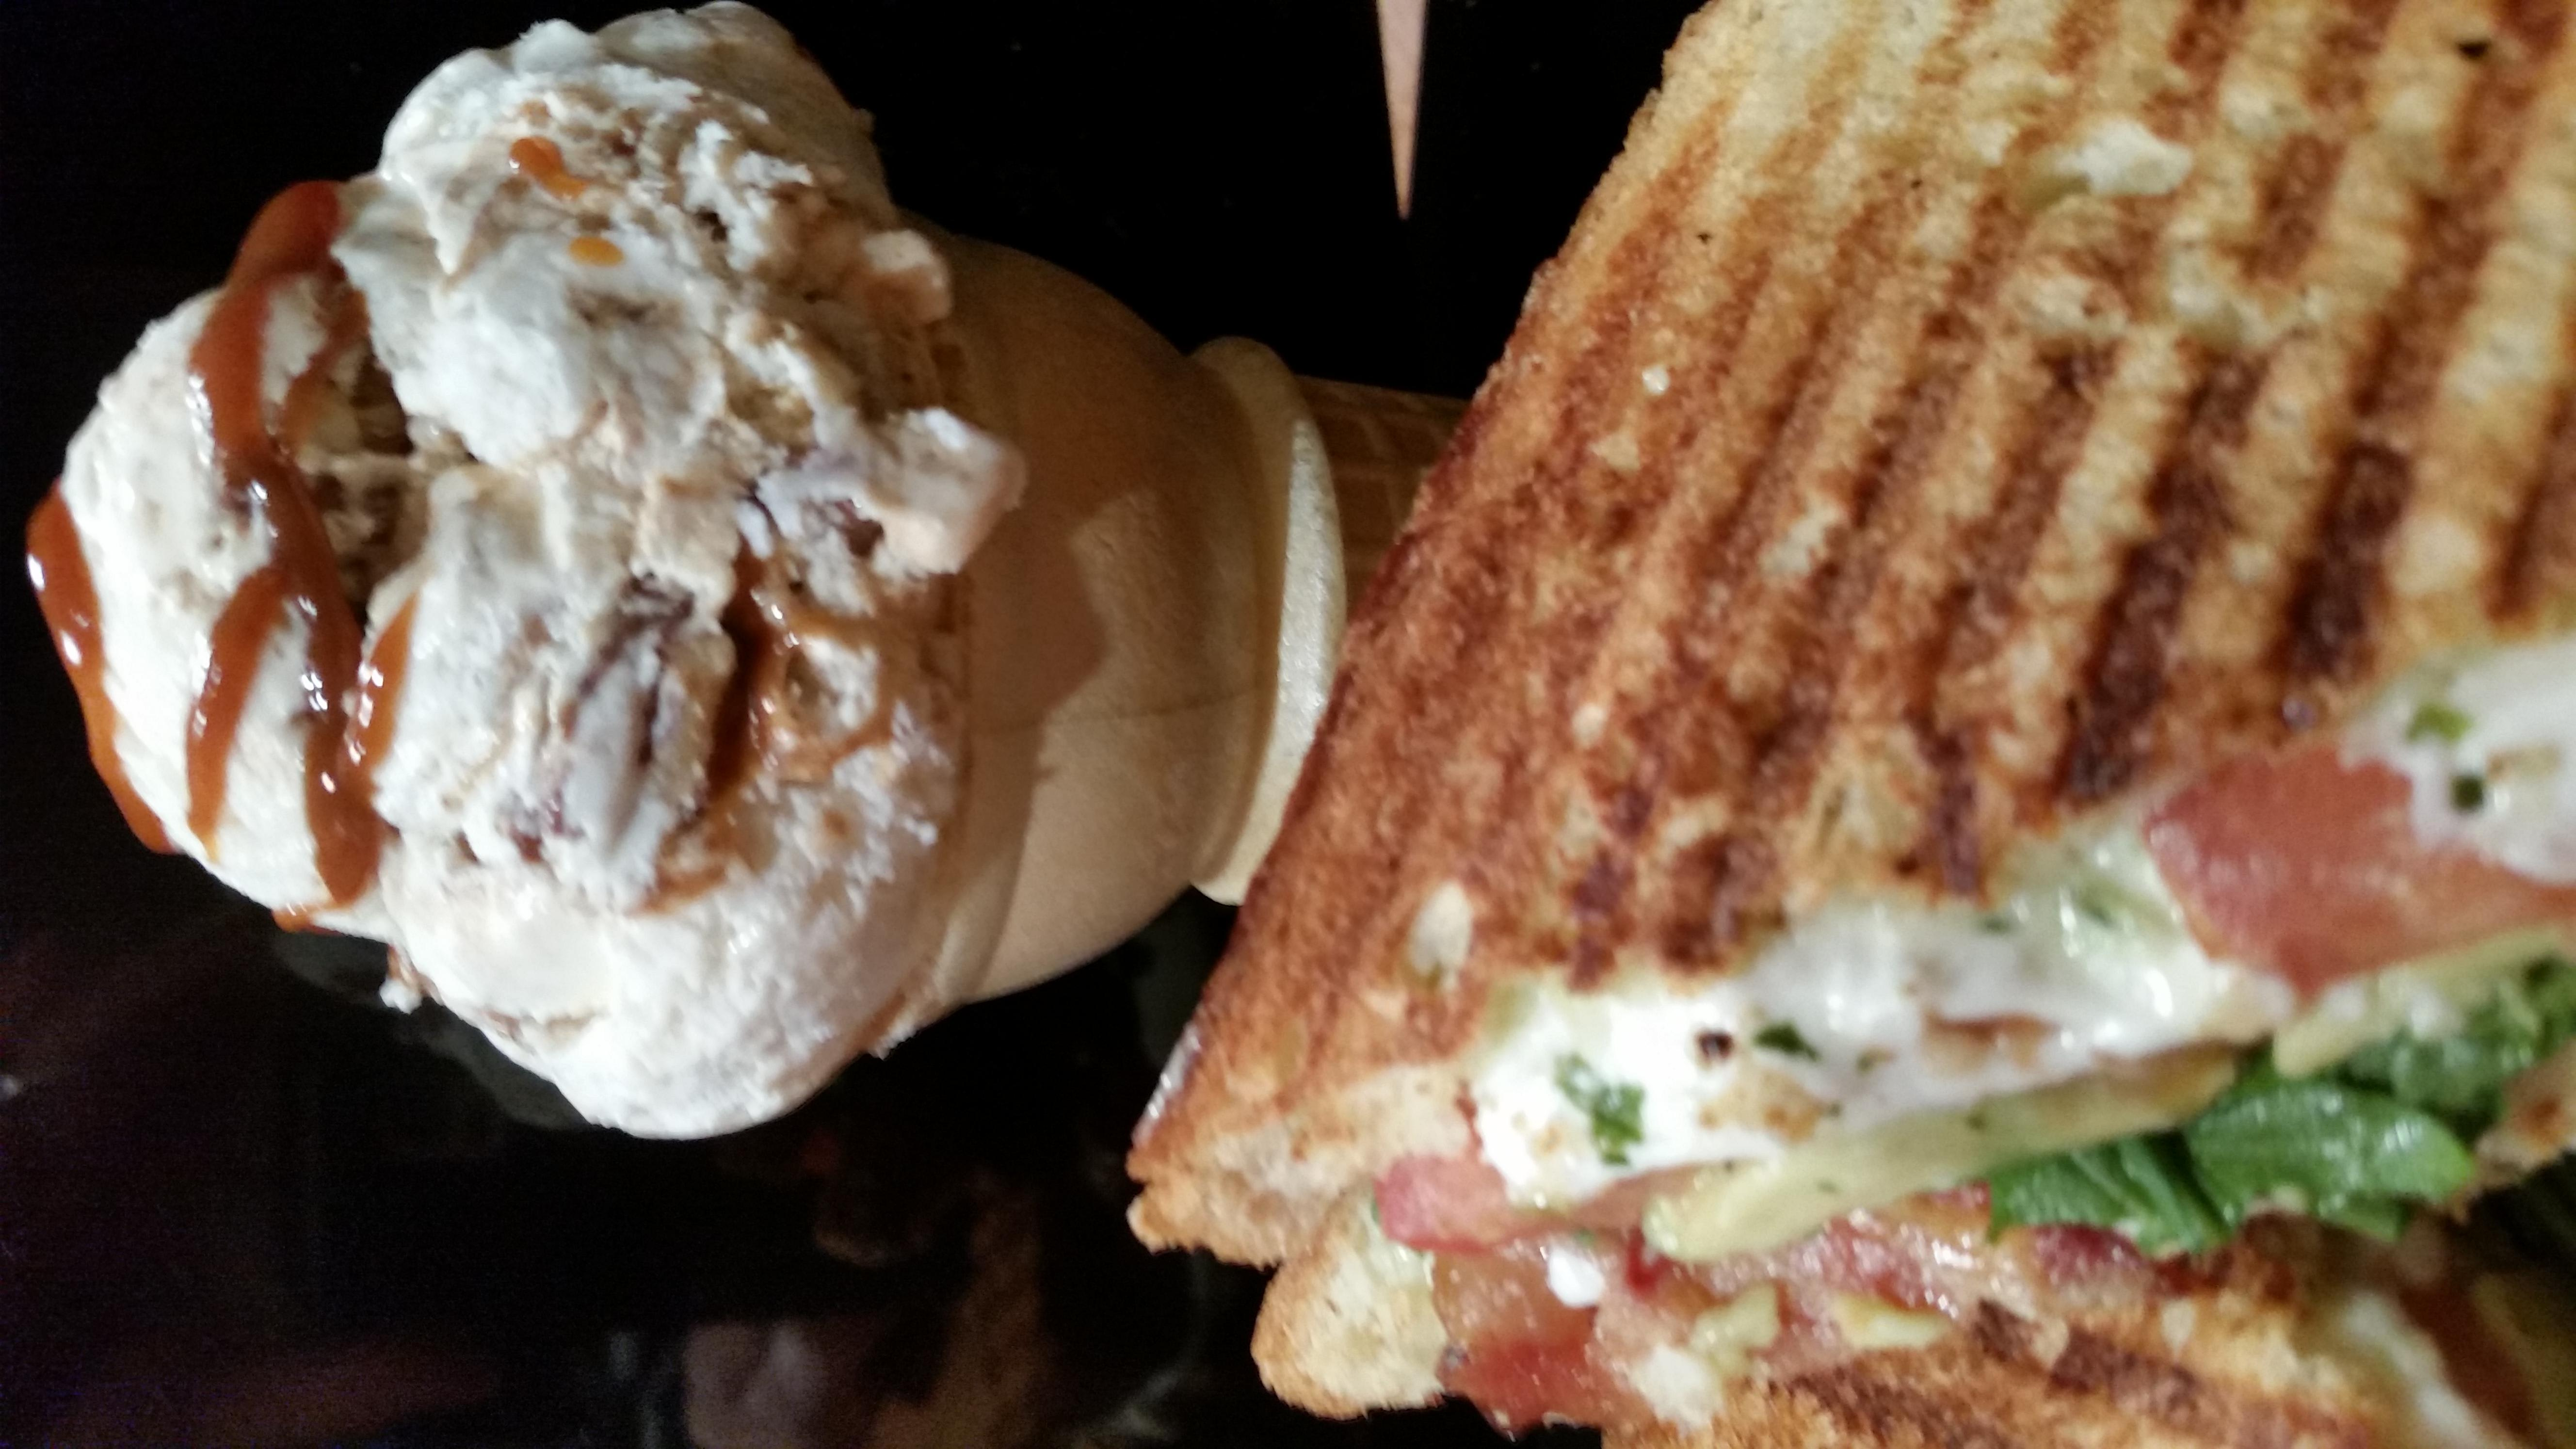 BLT Panini with a side of Almond Joy Ice Cream! at South Street Creamery Cafe